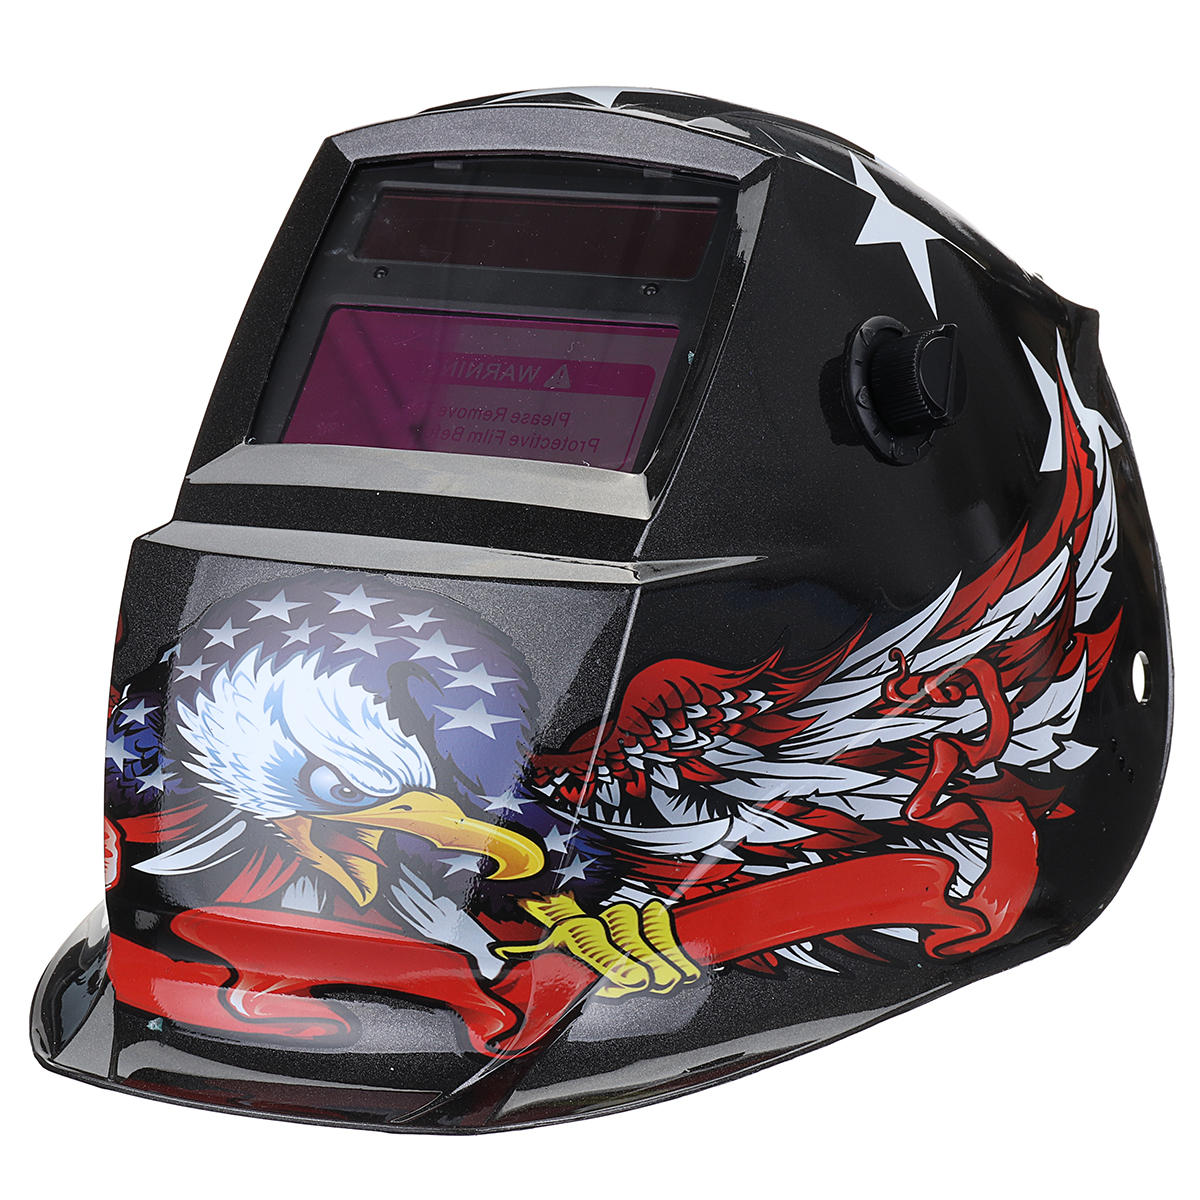 Solar Power Automatic Dimming Welding Helmet Welder Mask Adjustable Head Band PA